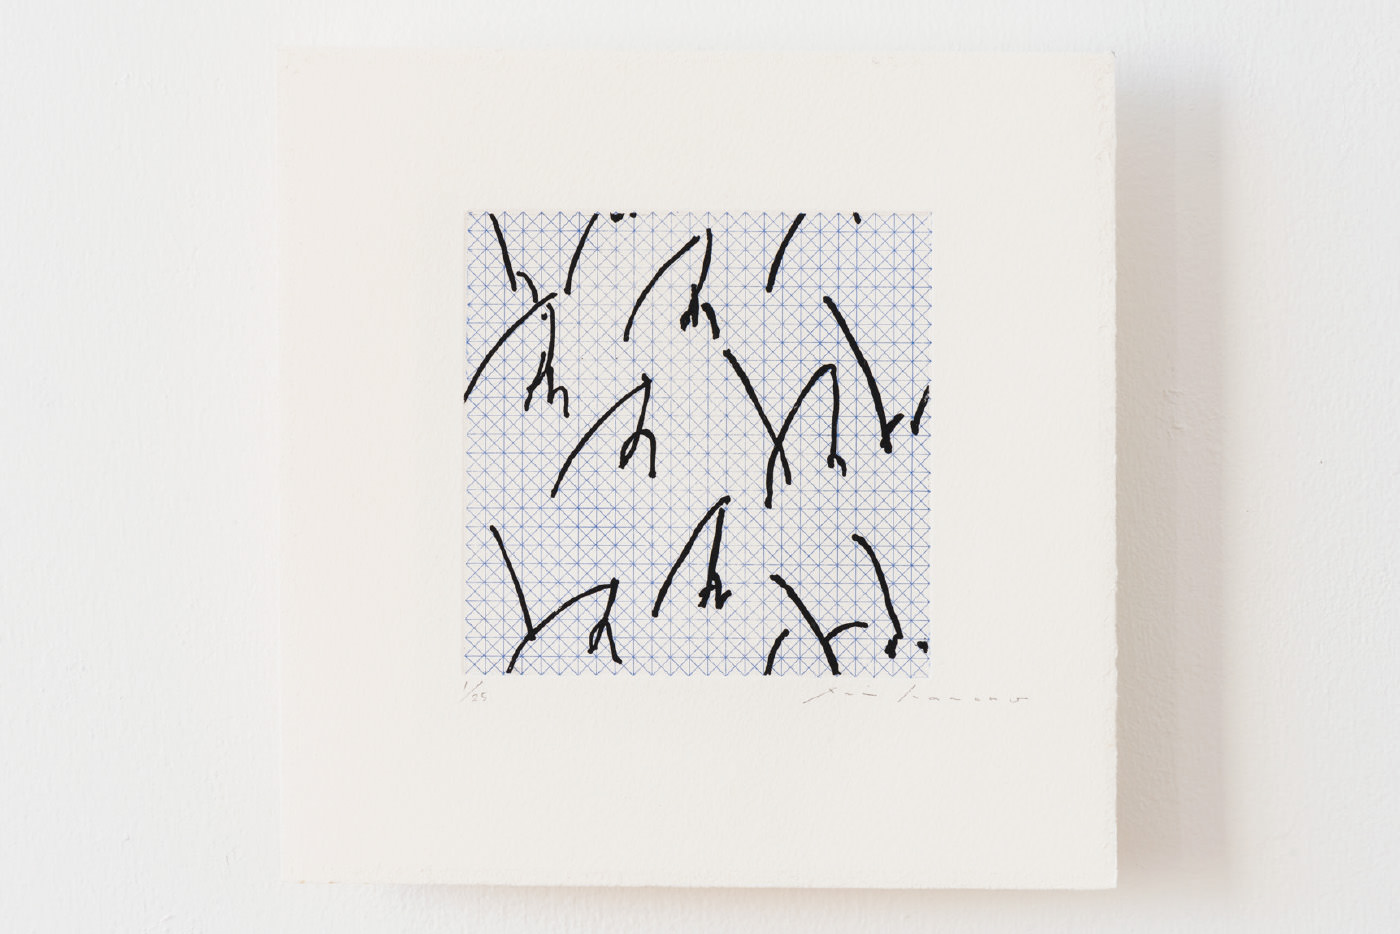 Garten, アルシュ紙にエッチング (2版2色)(etching on arches paper, 2plates 2colors), 225 × 225 mm, 2014 ( photo by Ken Kato )